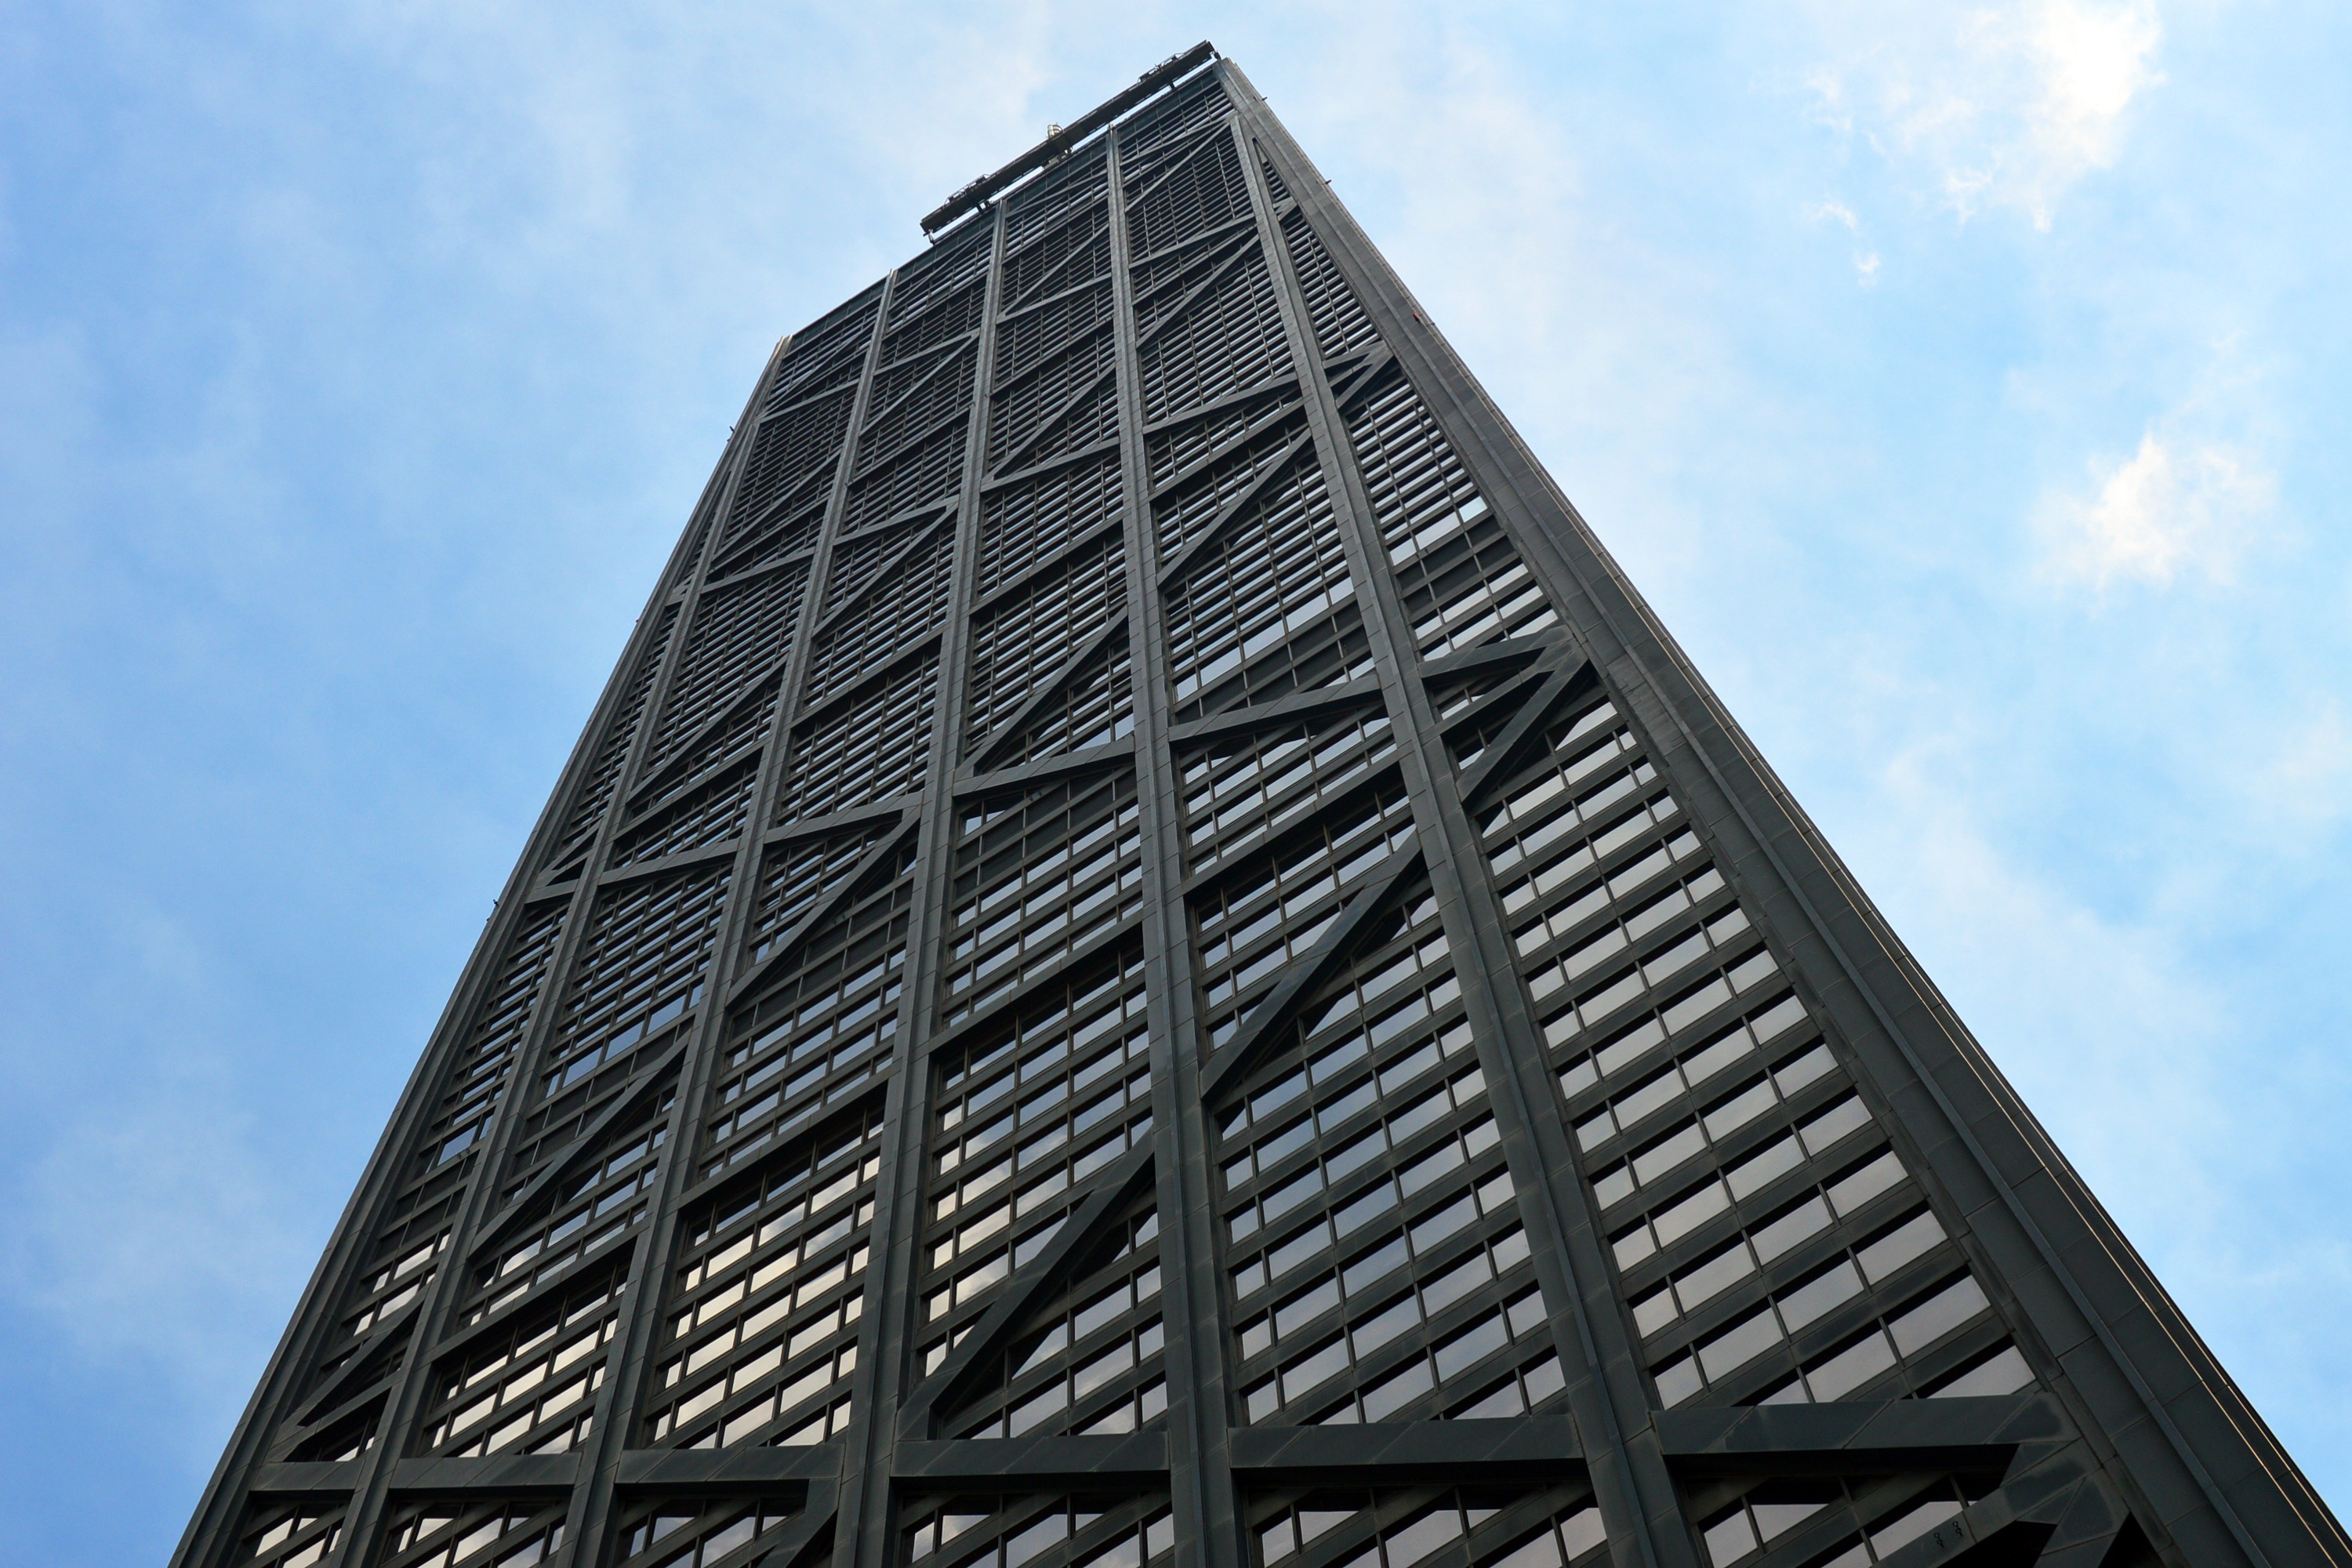 Iphone Optical Illusion Wallpaper Grey Concrete Tower Building 183 Free Stock Photo